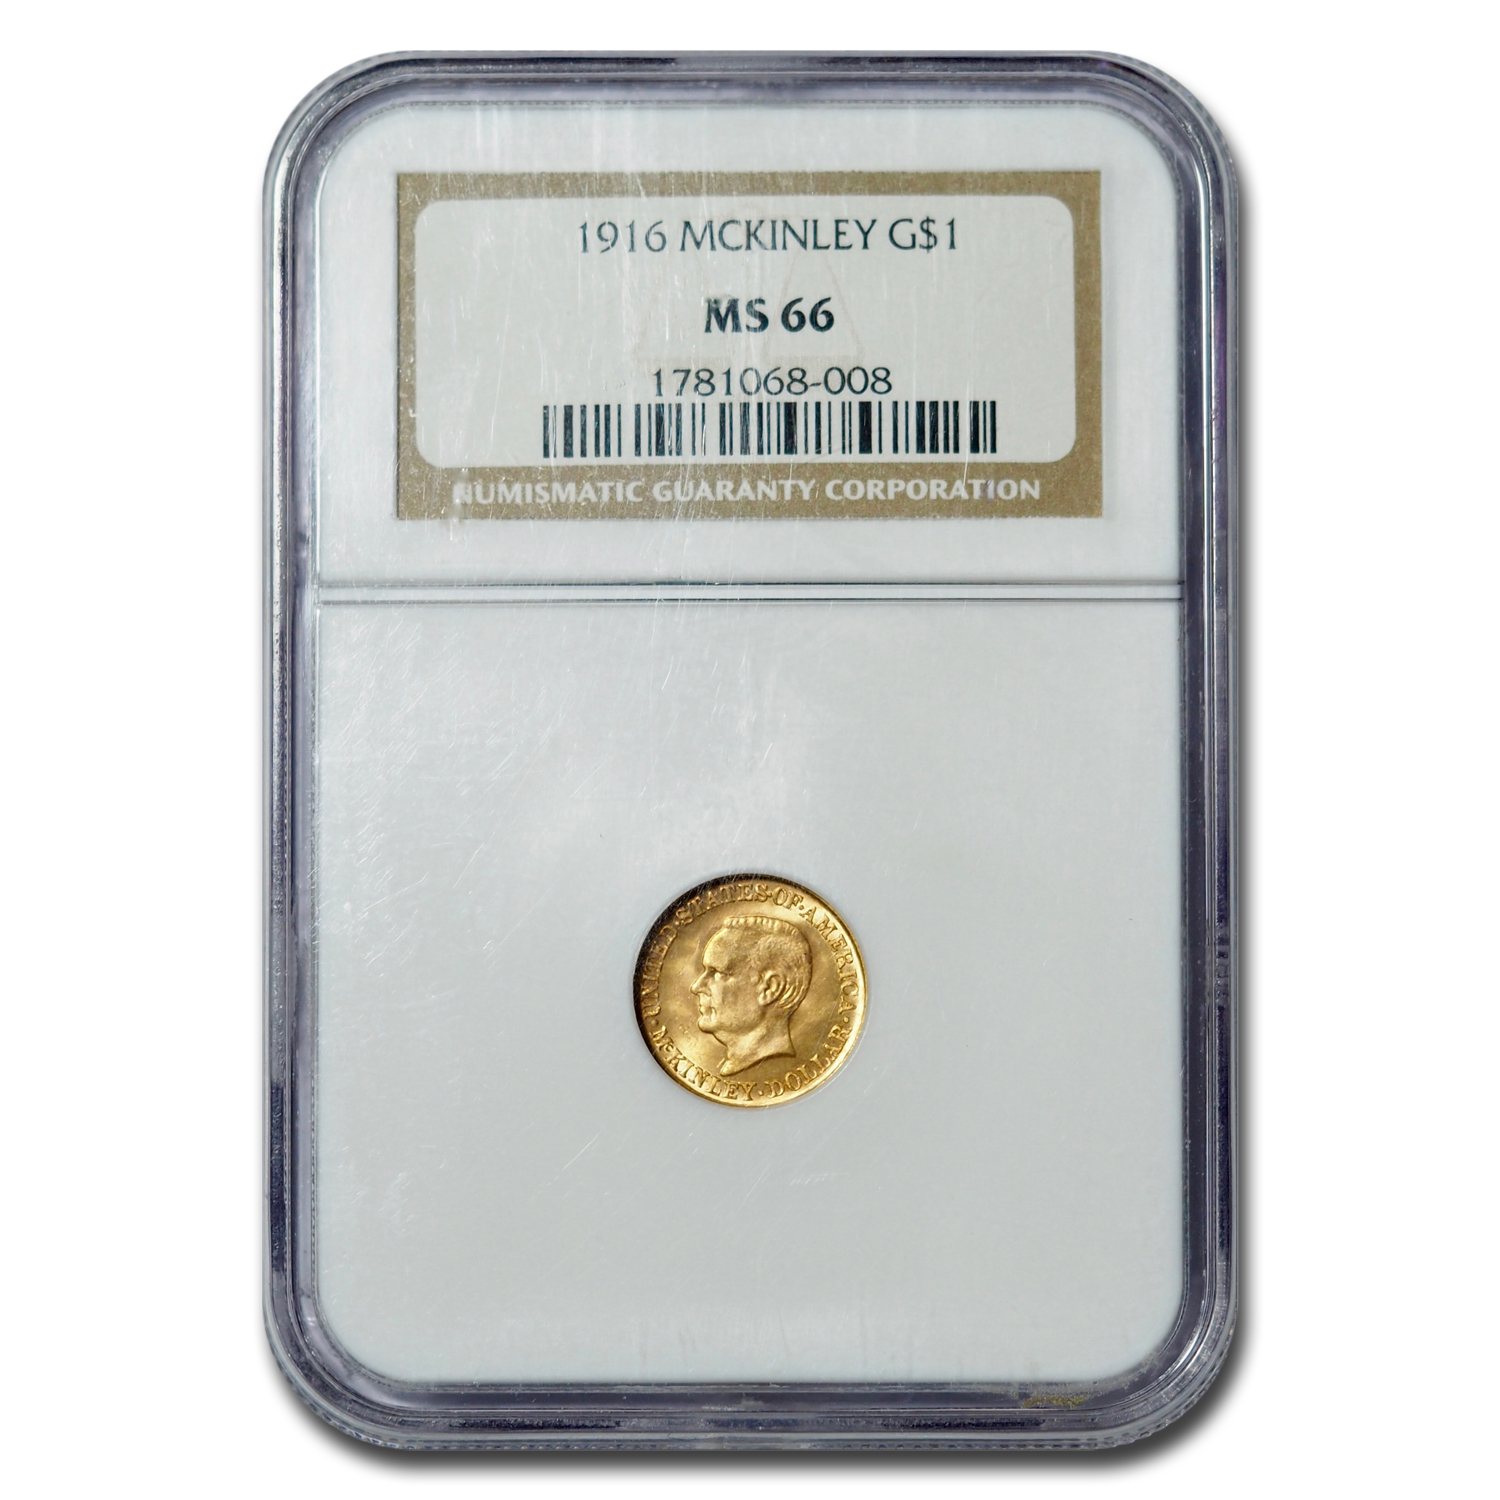 1916 Gold $1.00 McKinley Commemorative MS-66 NGC